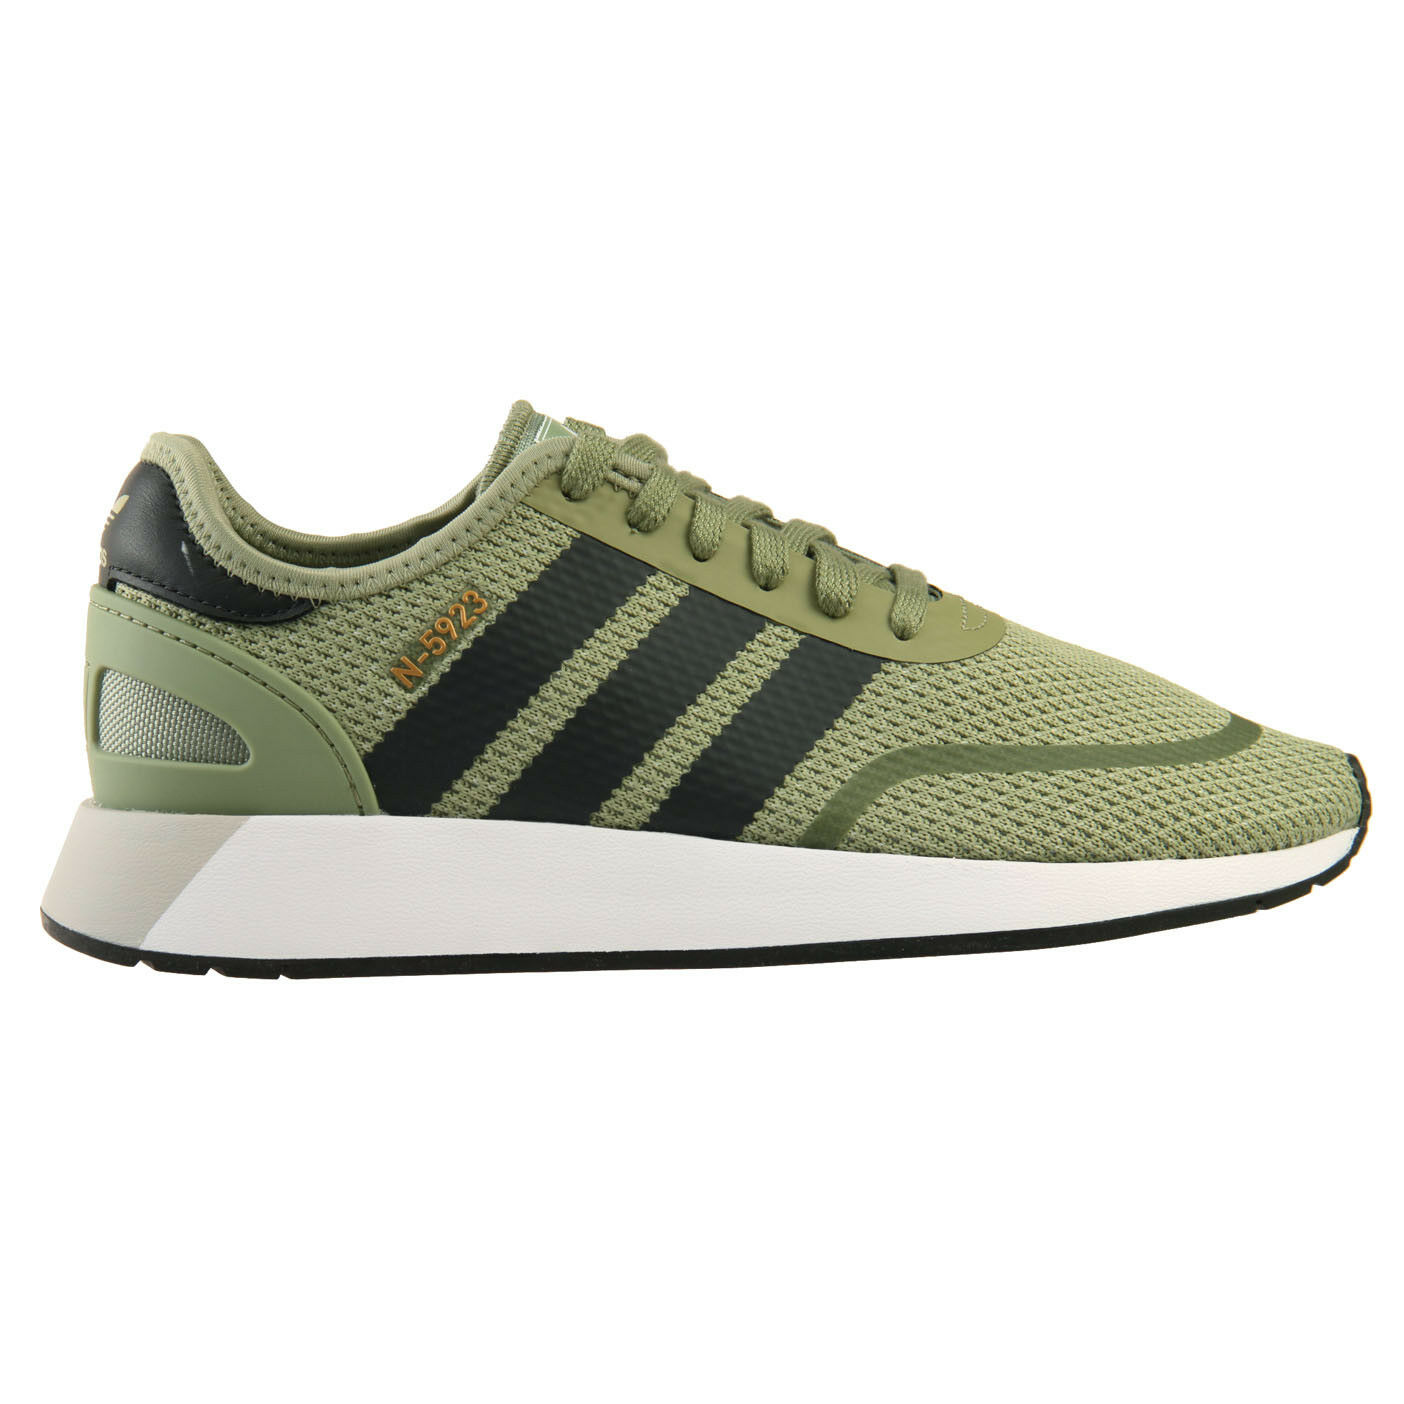 Adidas N-5923 Uomo DB0959 Tent Green Carbon White Running Shoes Size 11